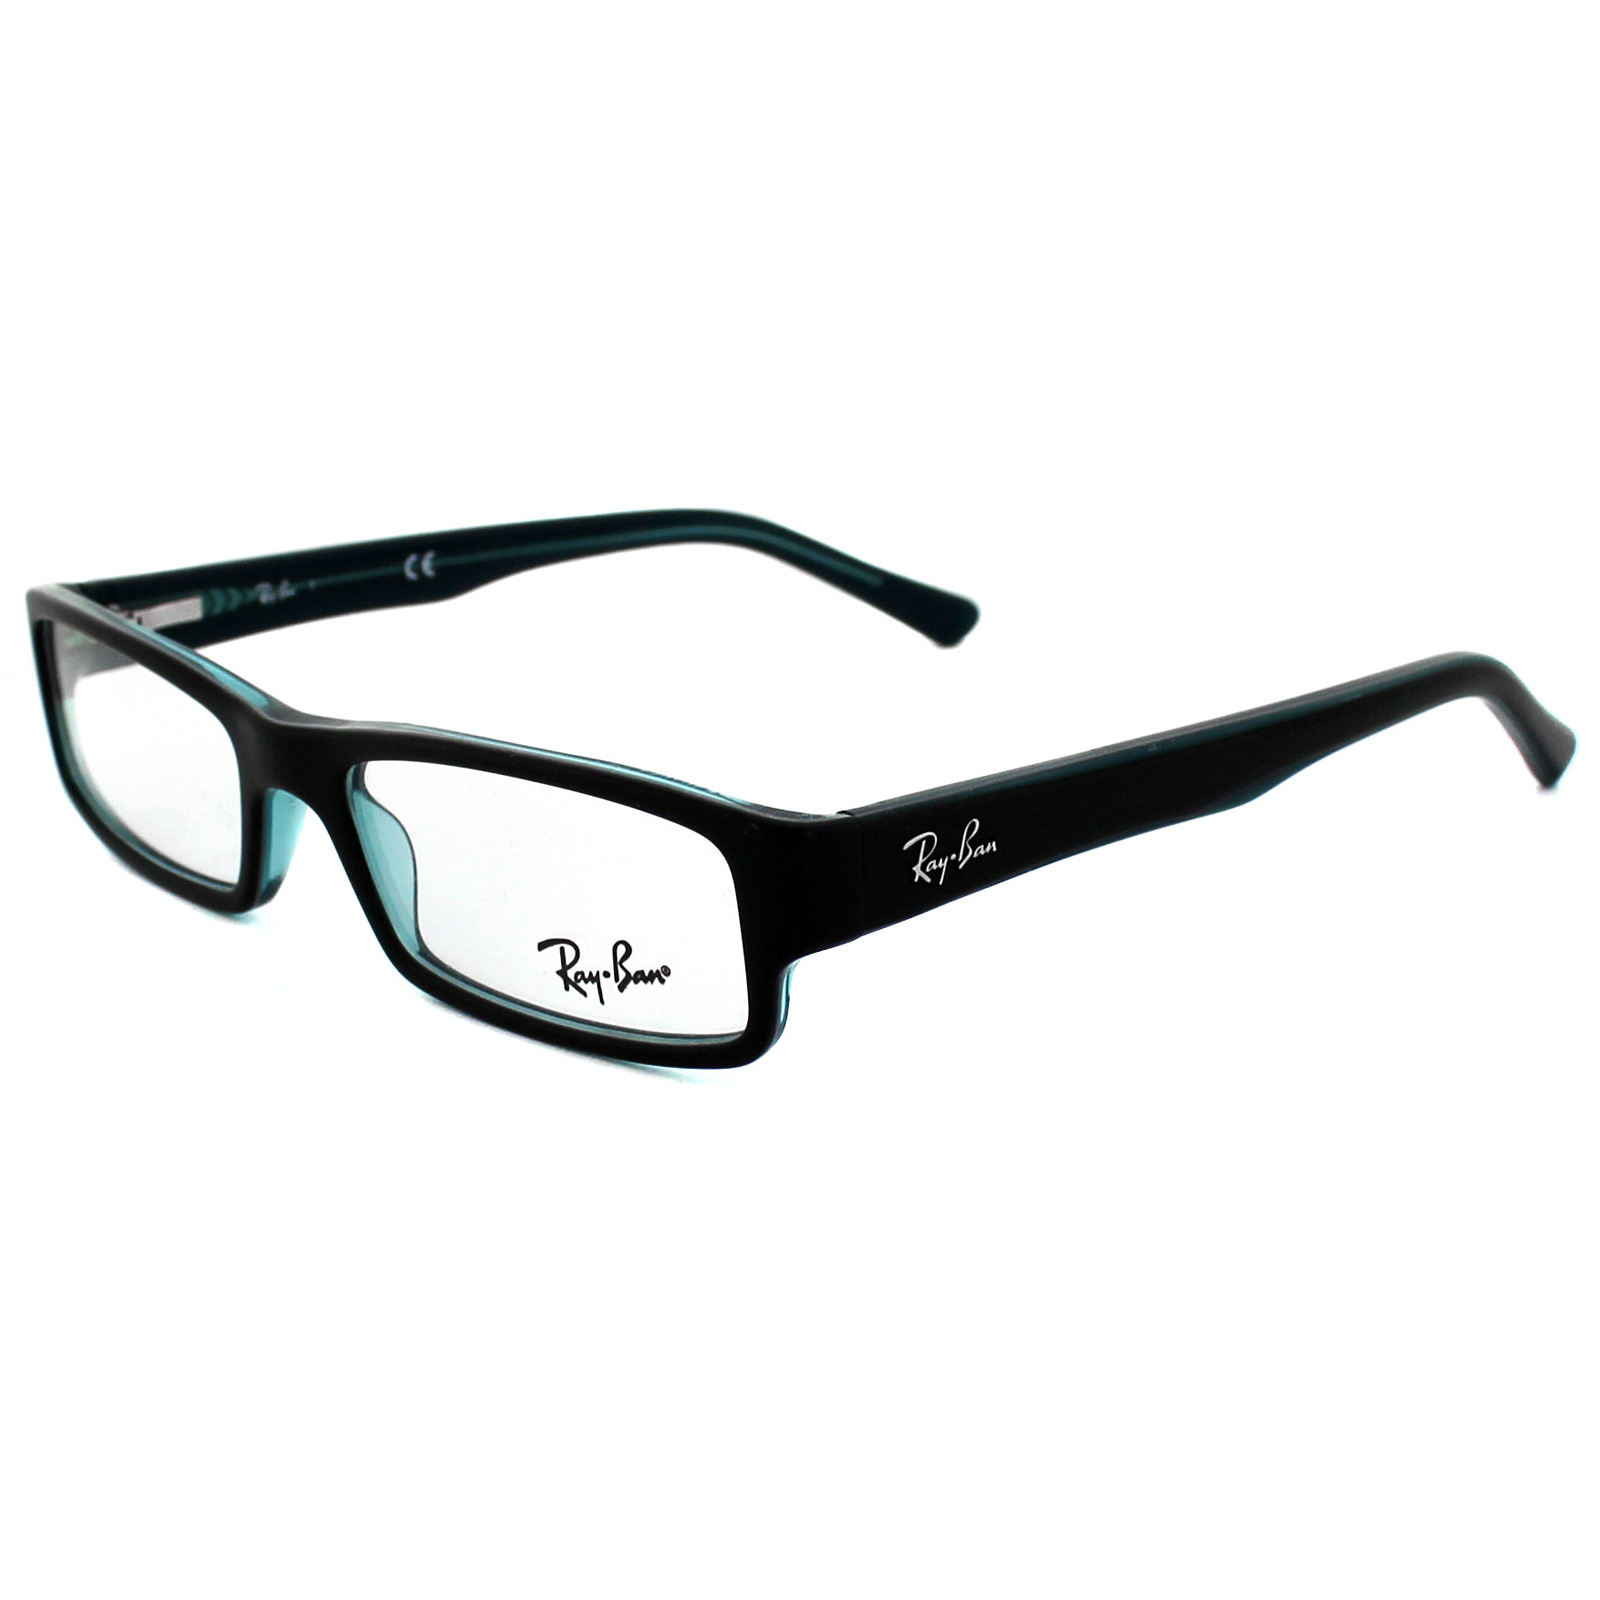 sentinel ray ban glasses frames 5246 5092 black grey turquoise